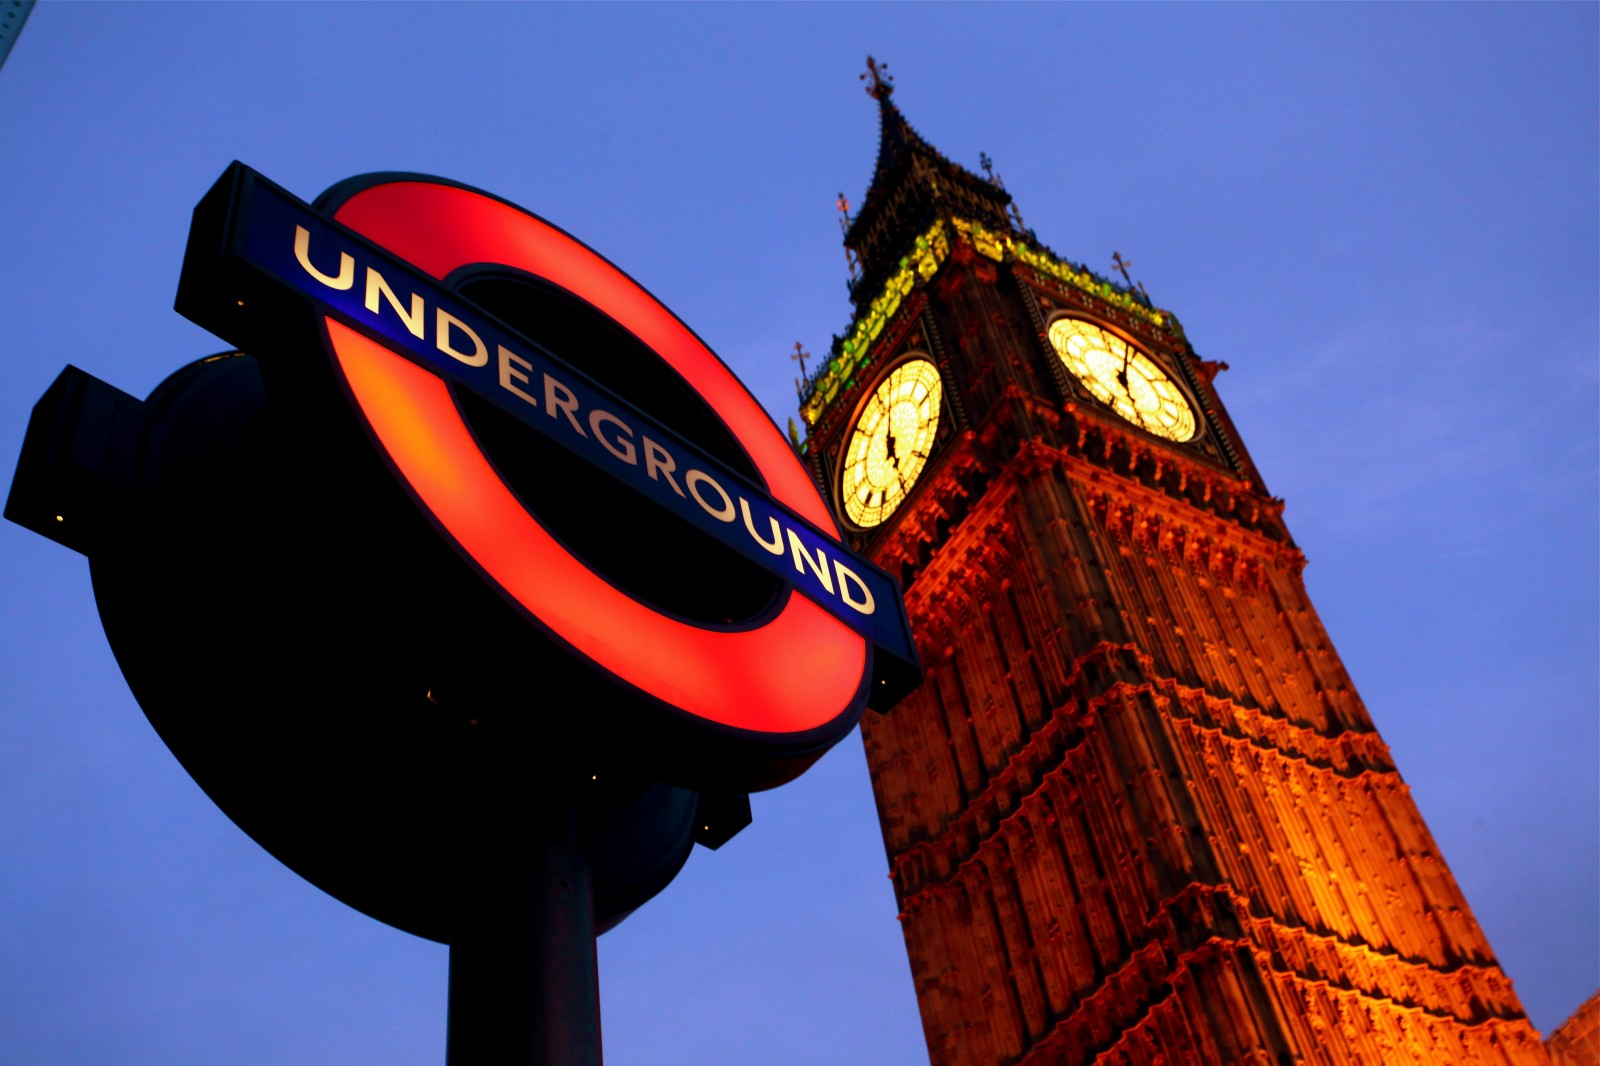 underground london tube big ben